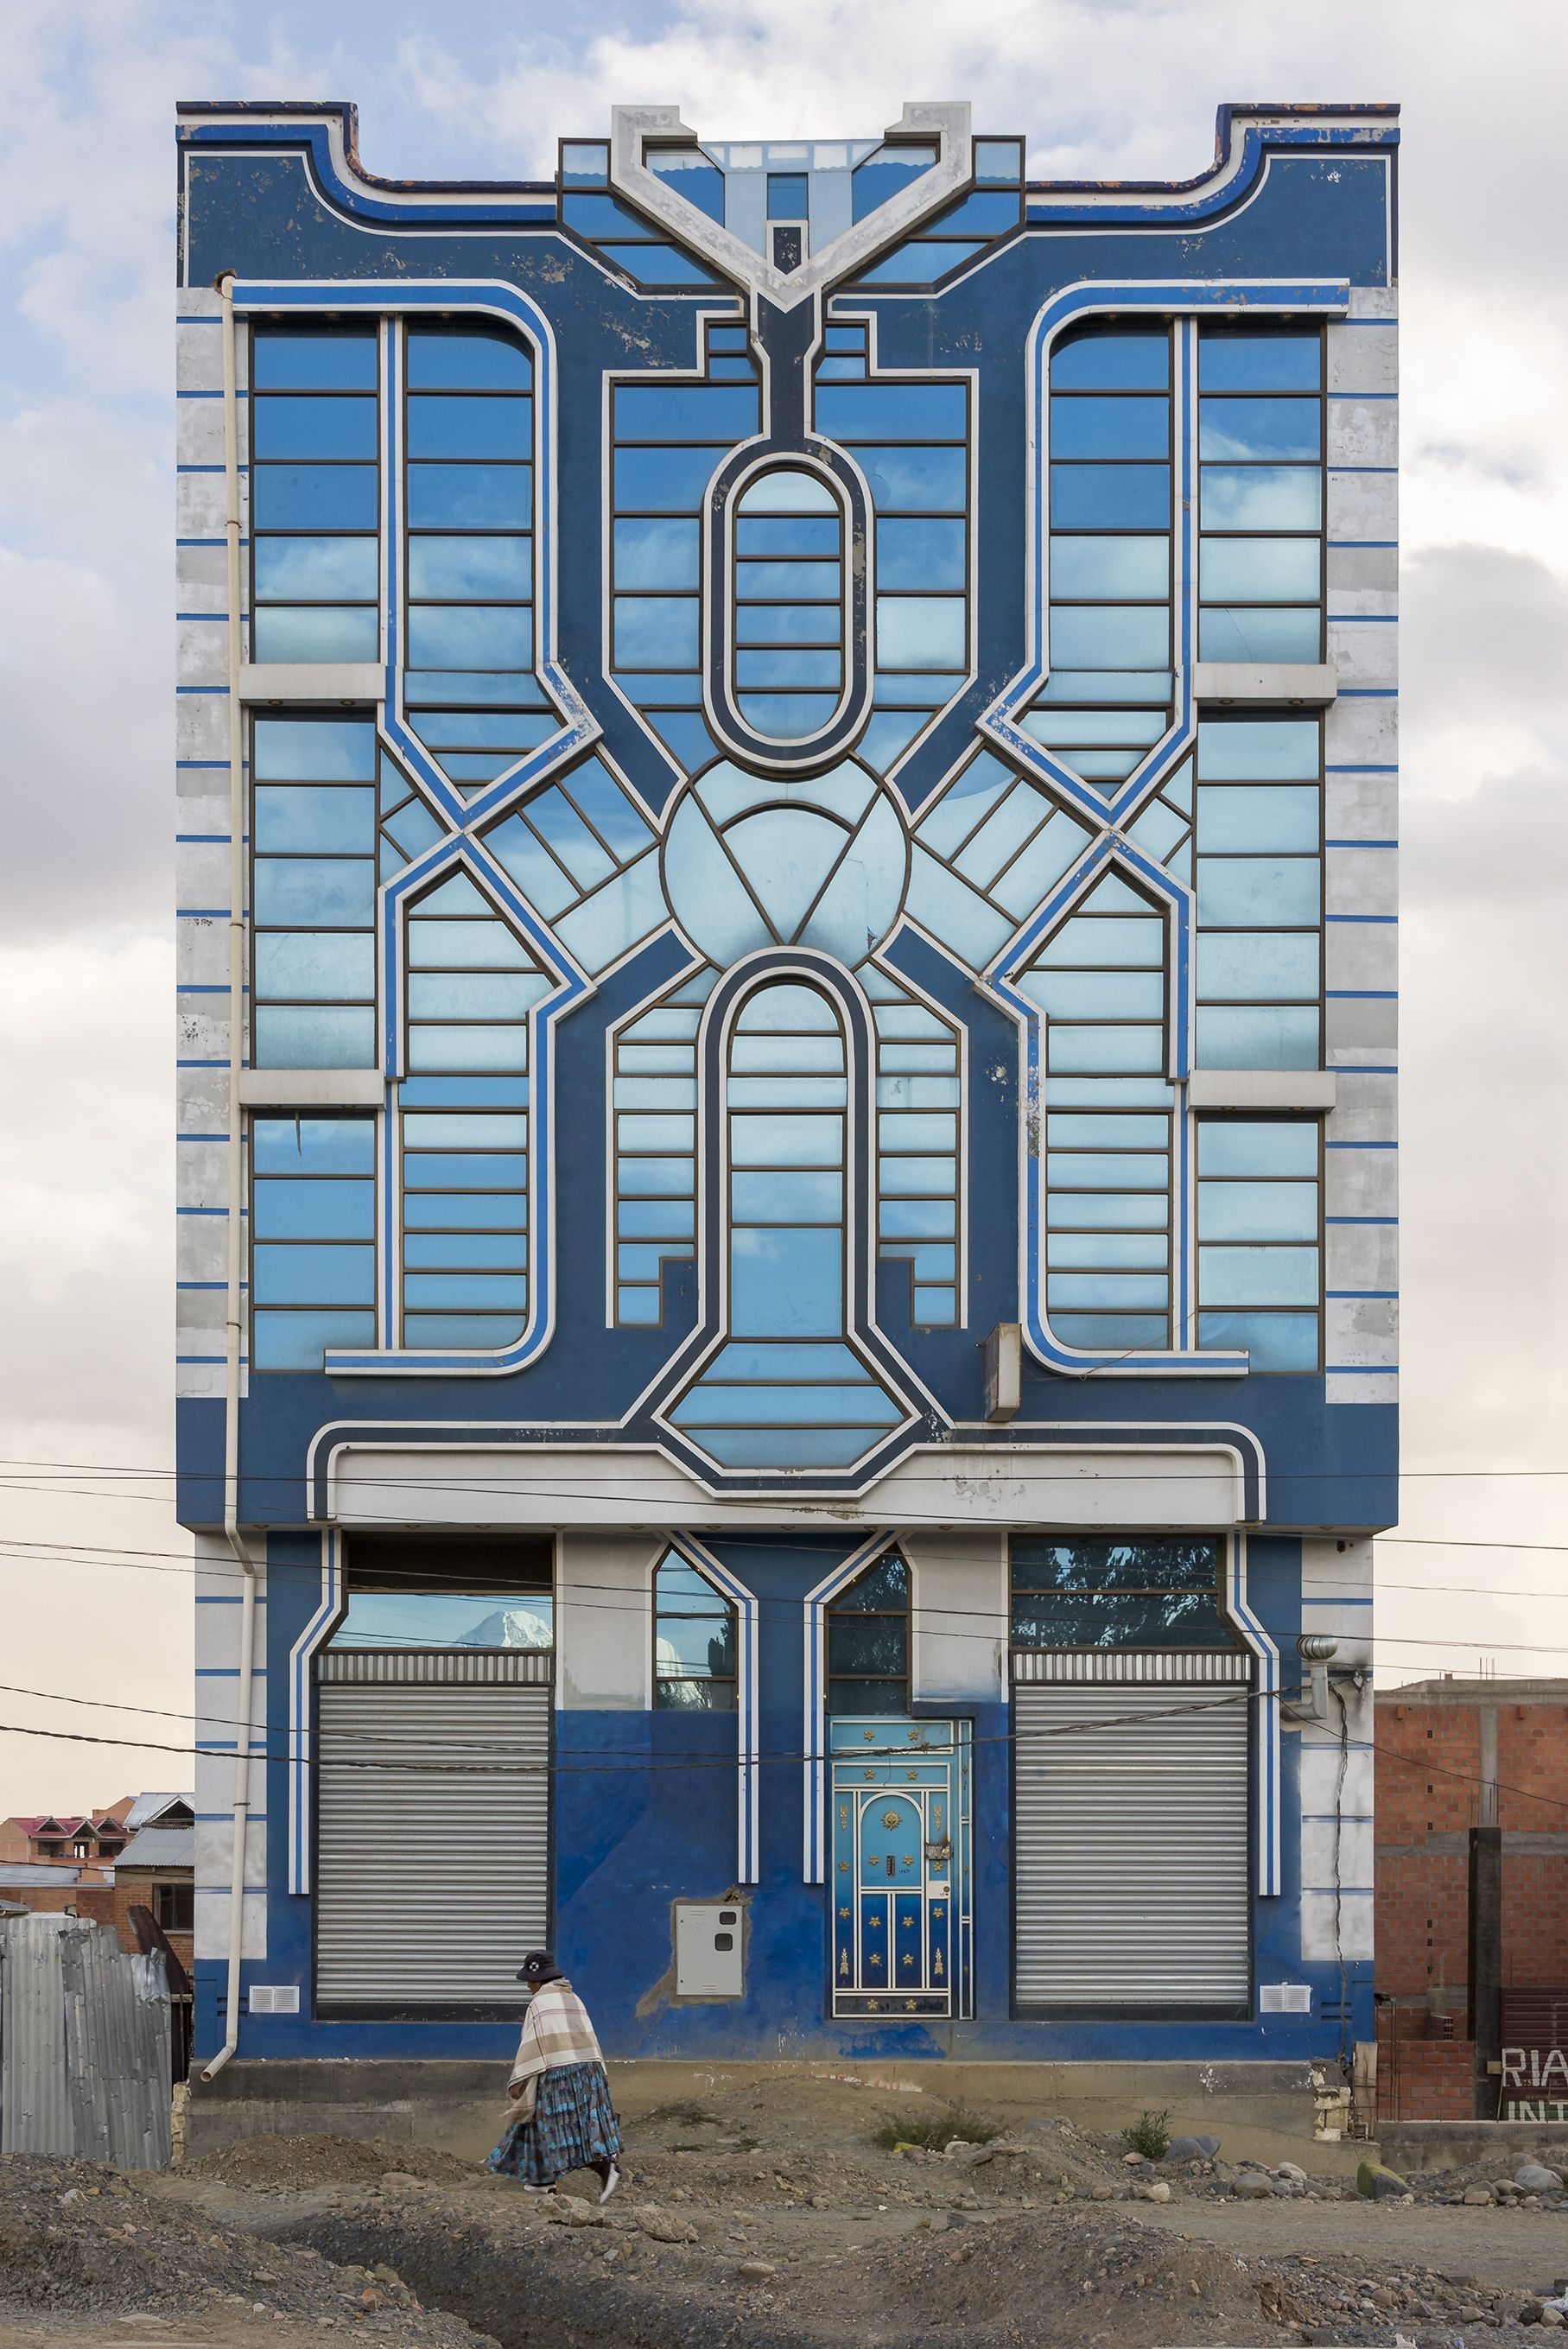 24aec2ab3 Architecture photography of the Cholets, in El Alto, Bolivia. The  authorship of this nuevo andino style can be entrusted to the self-taught  architect Freddy ...